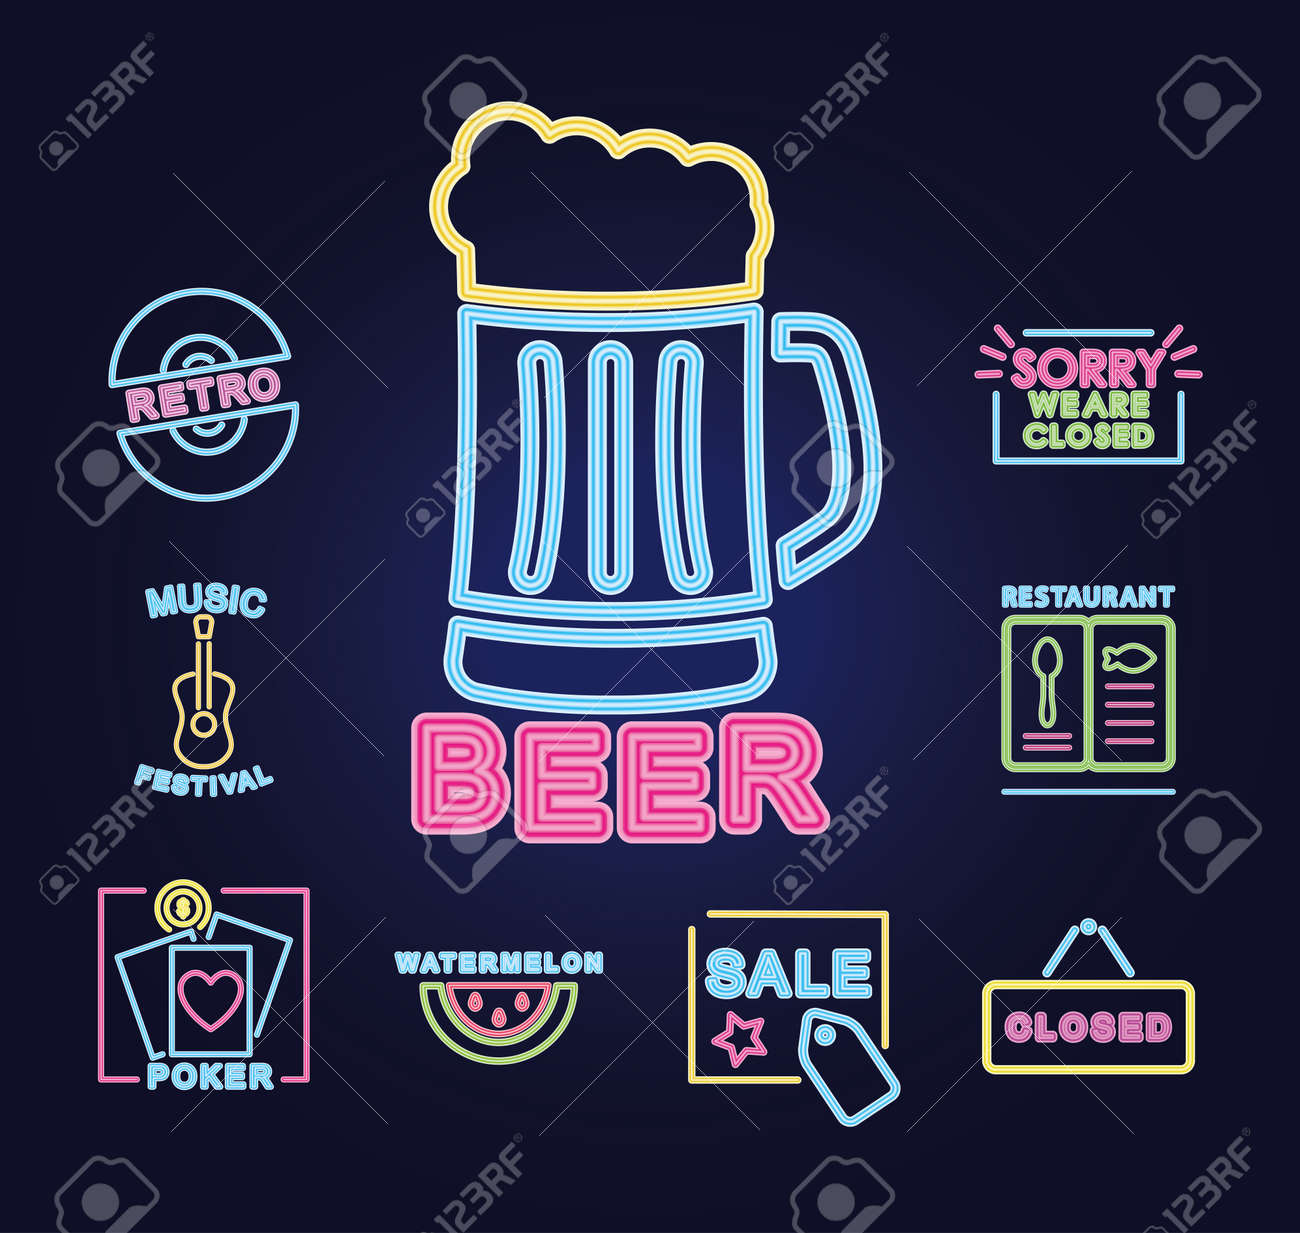 beer mug and neon signs icon set over purple background, vector illustration - 158754507